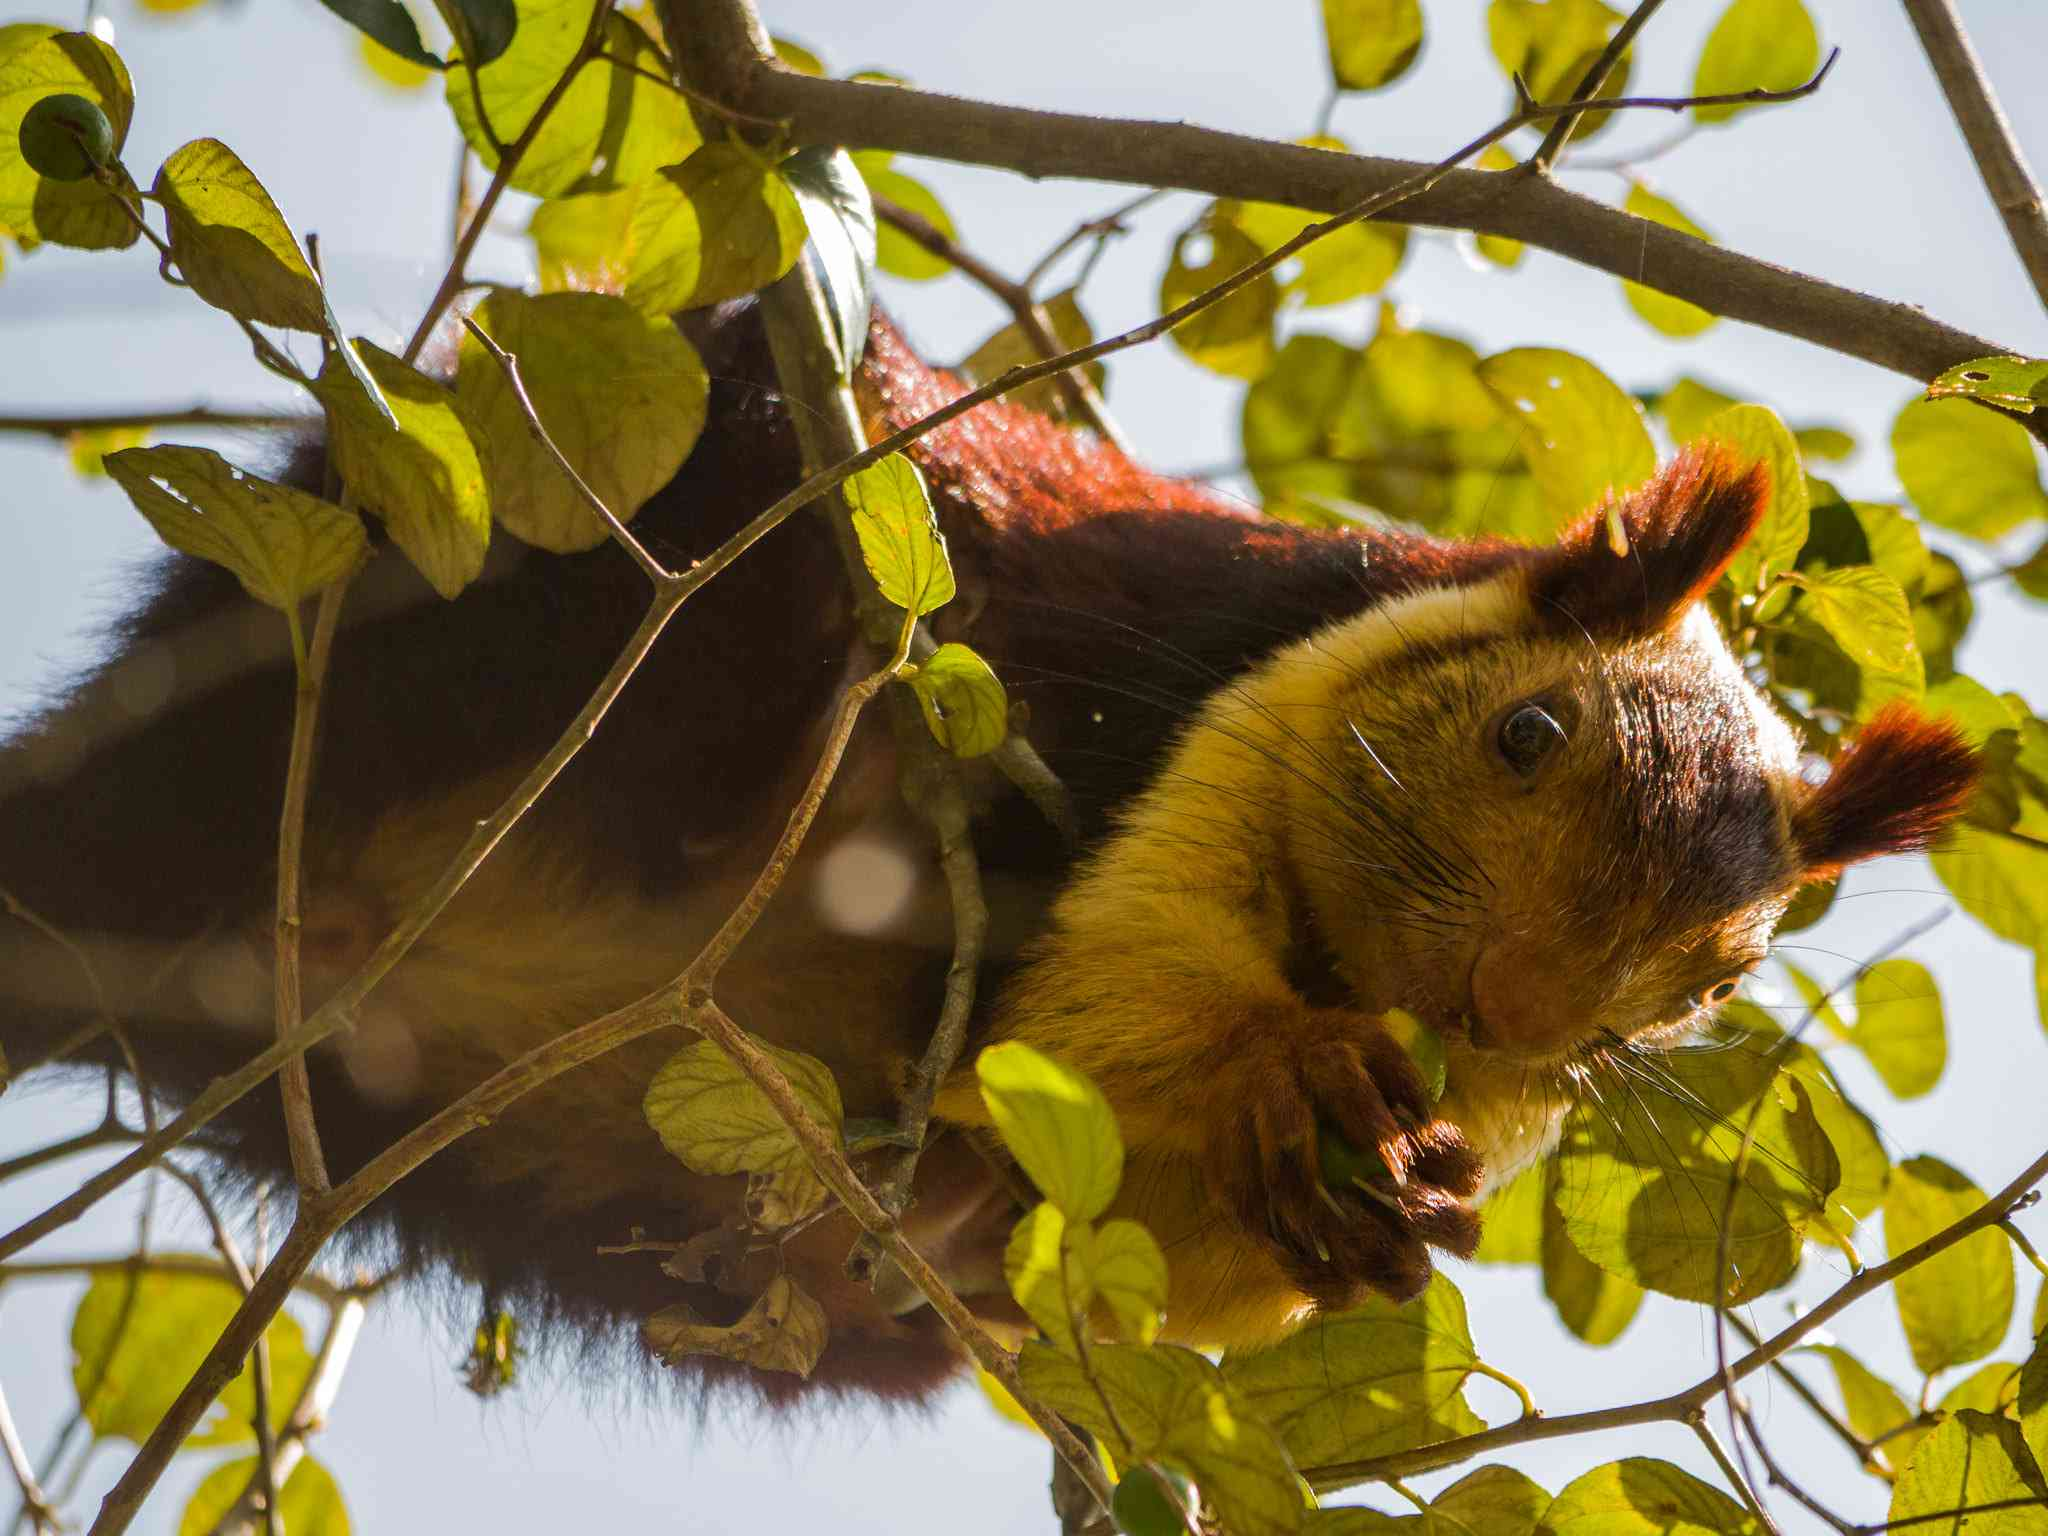 Indian giant squirrel in a tree